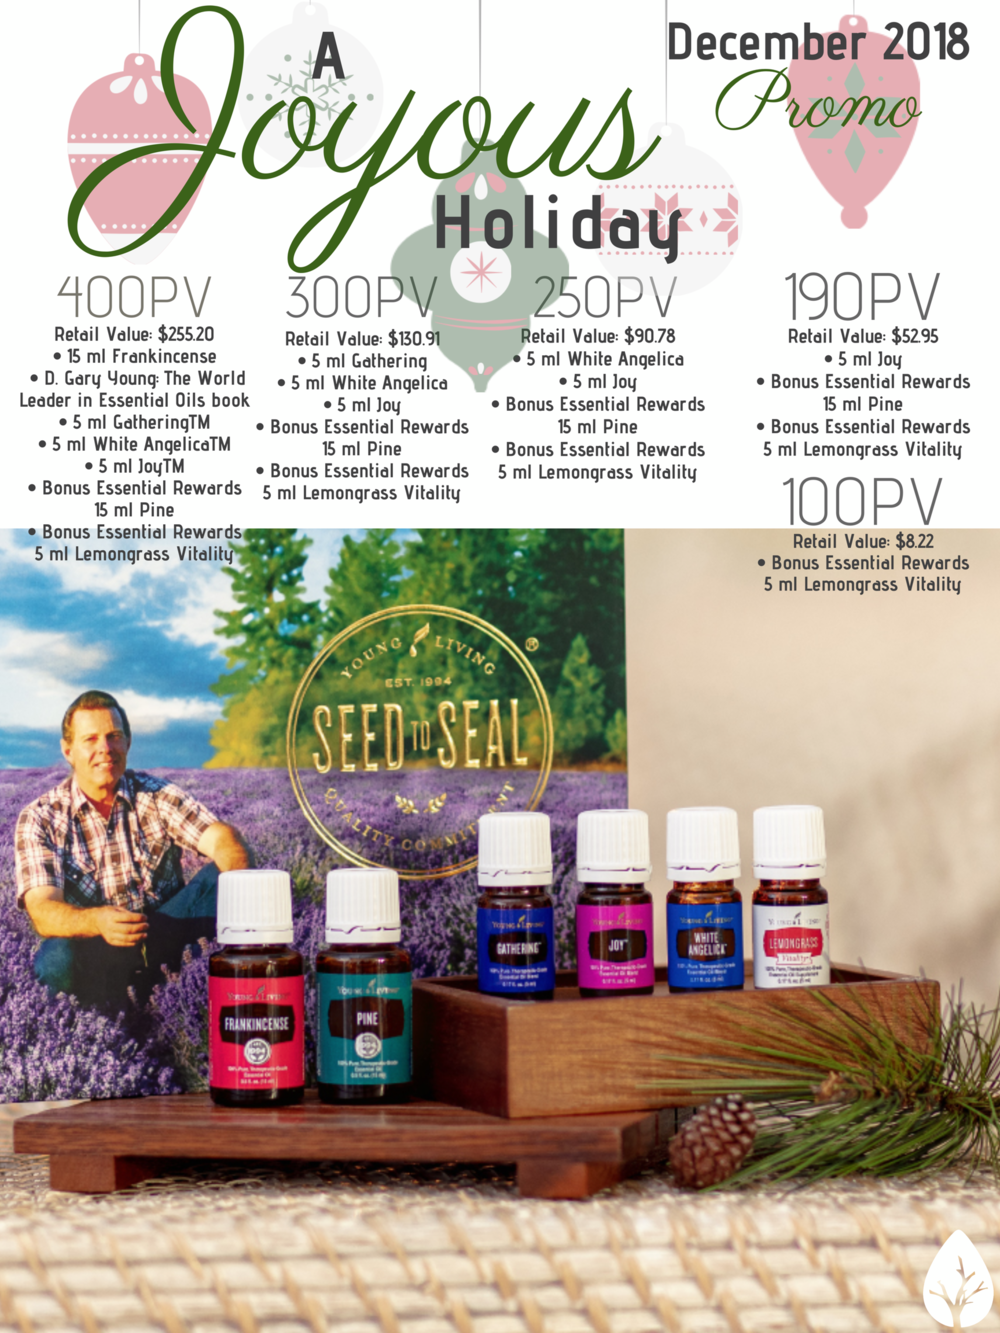 Mood-boosting oils star in this holiday-perfect promo.